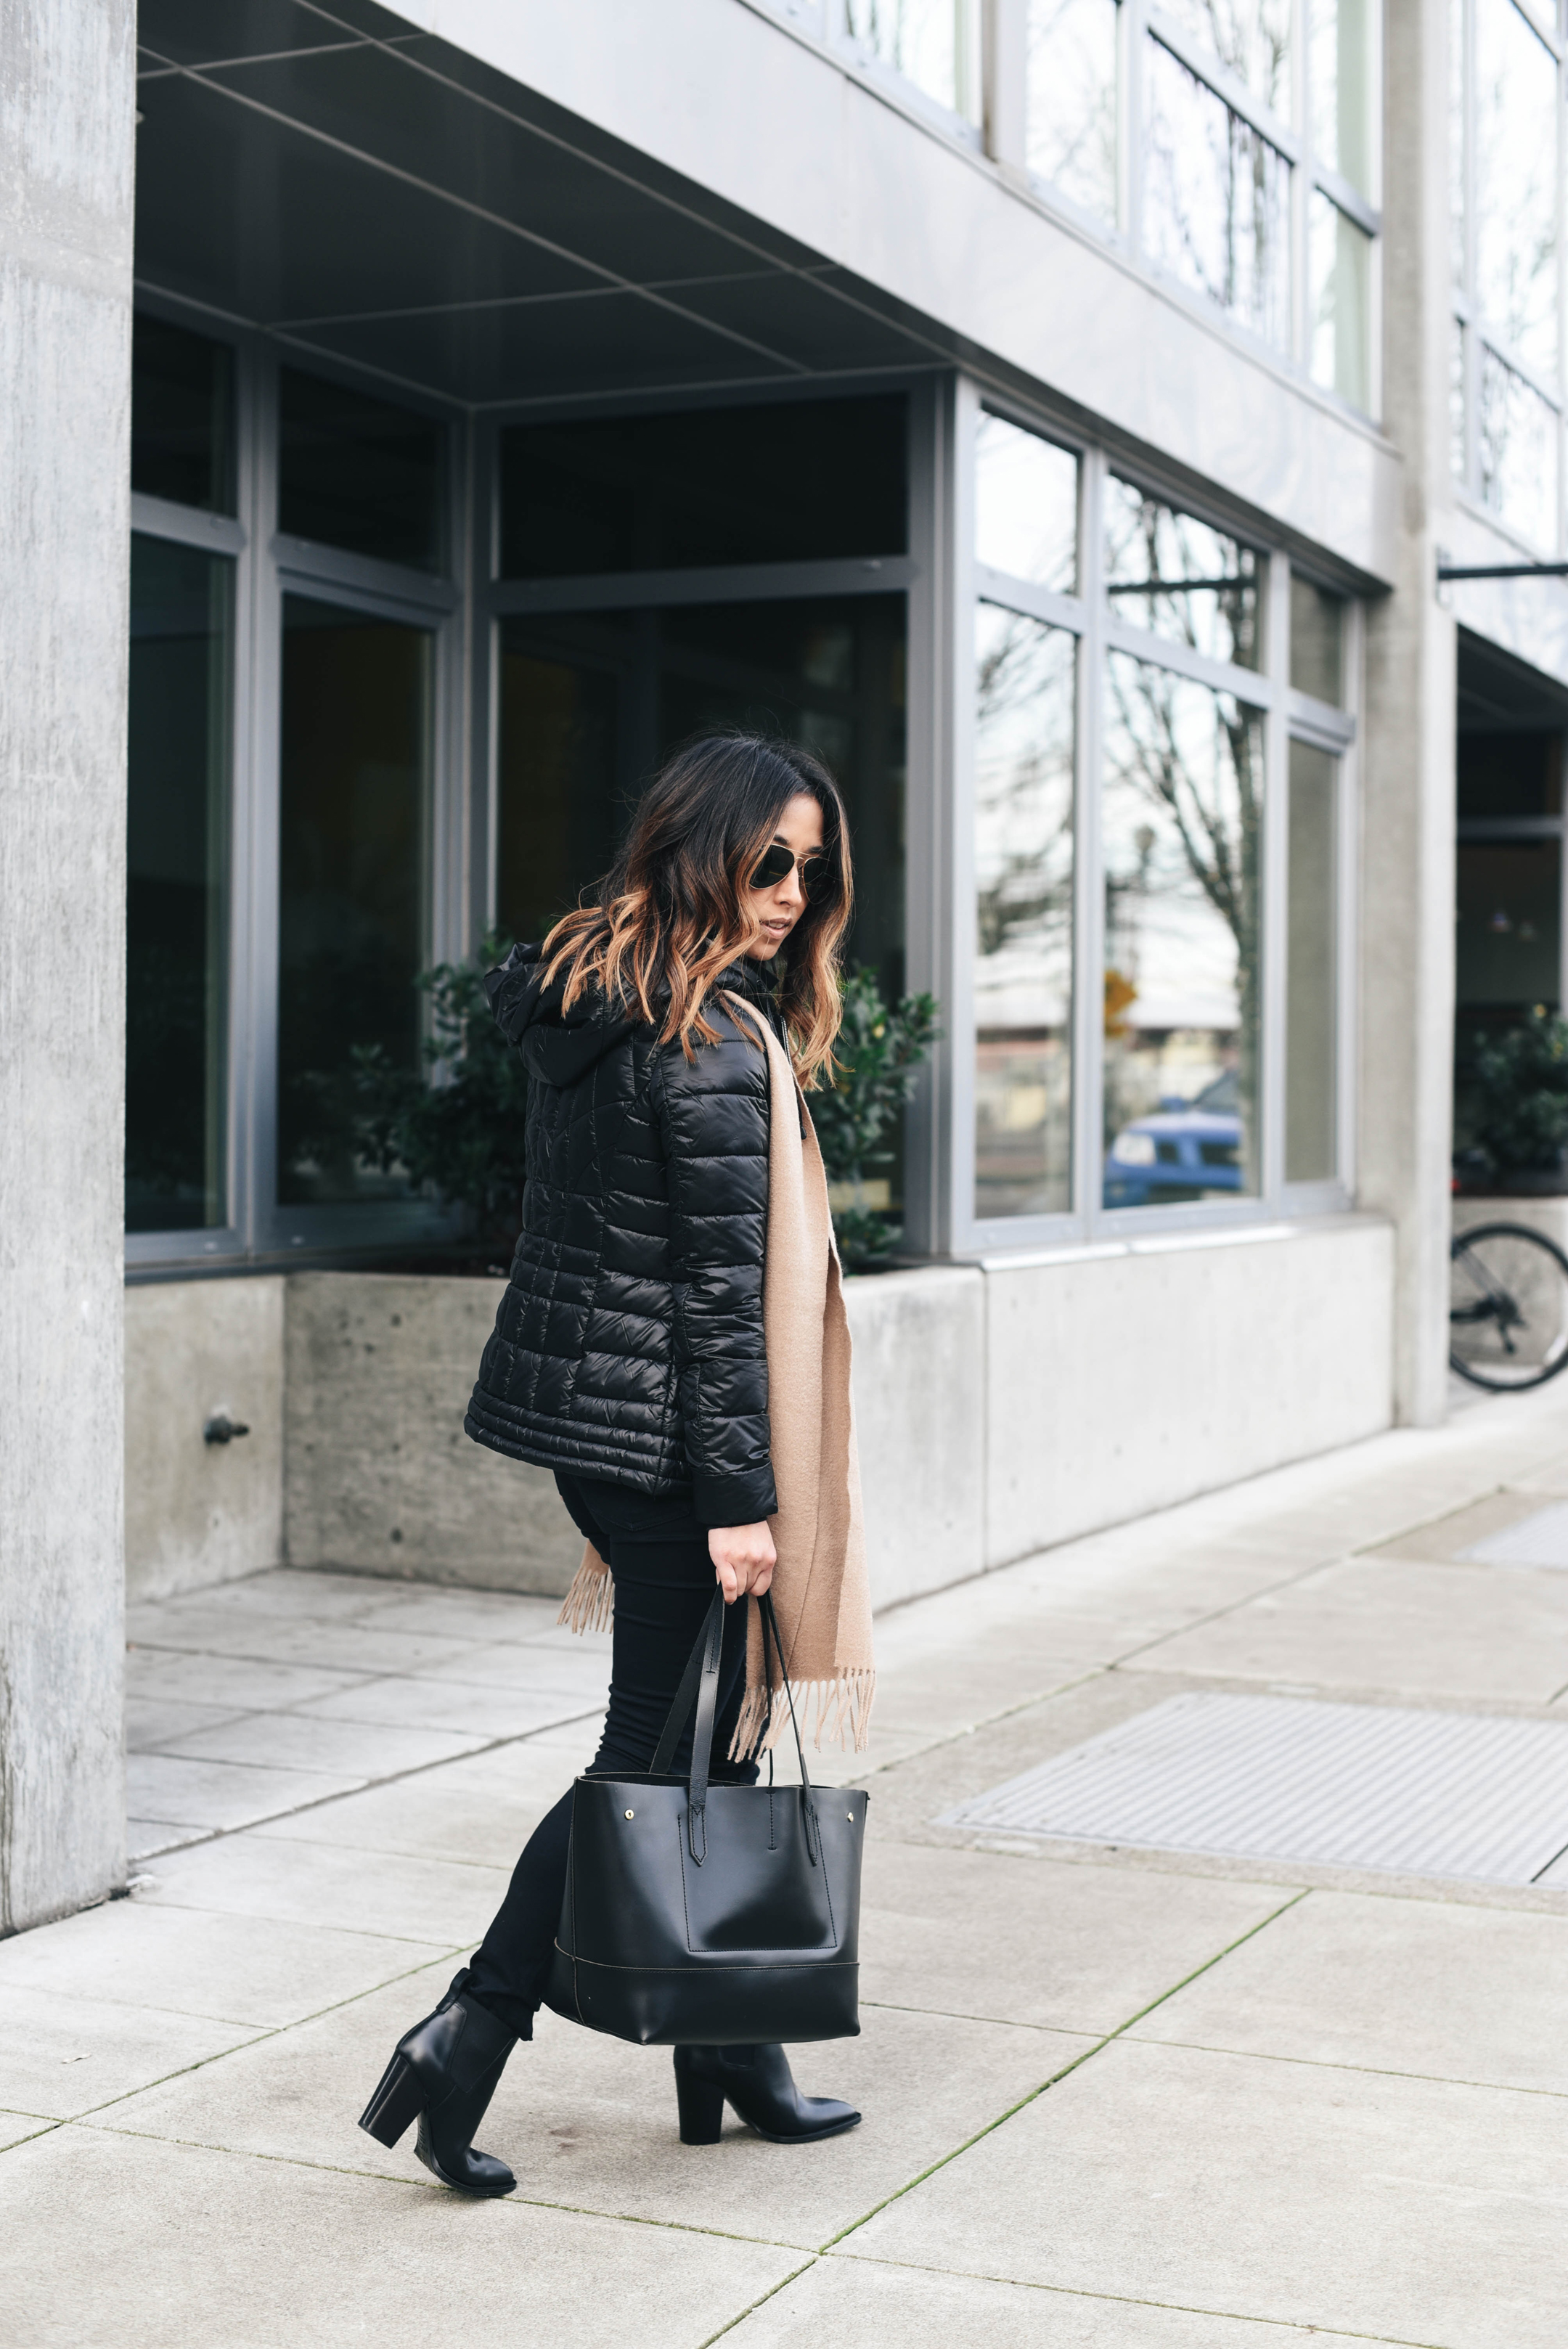 a16f2349b2f61 Winter Wear  My 3 Must-Have Winter Layers - Crystalin Marie